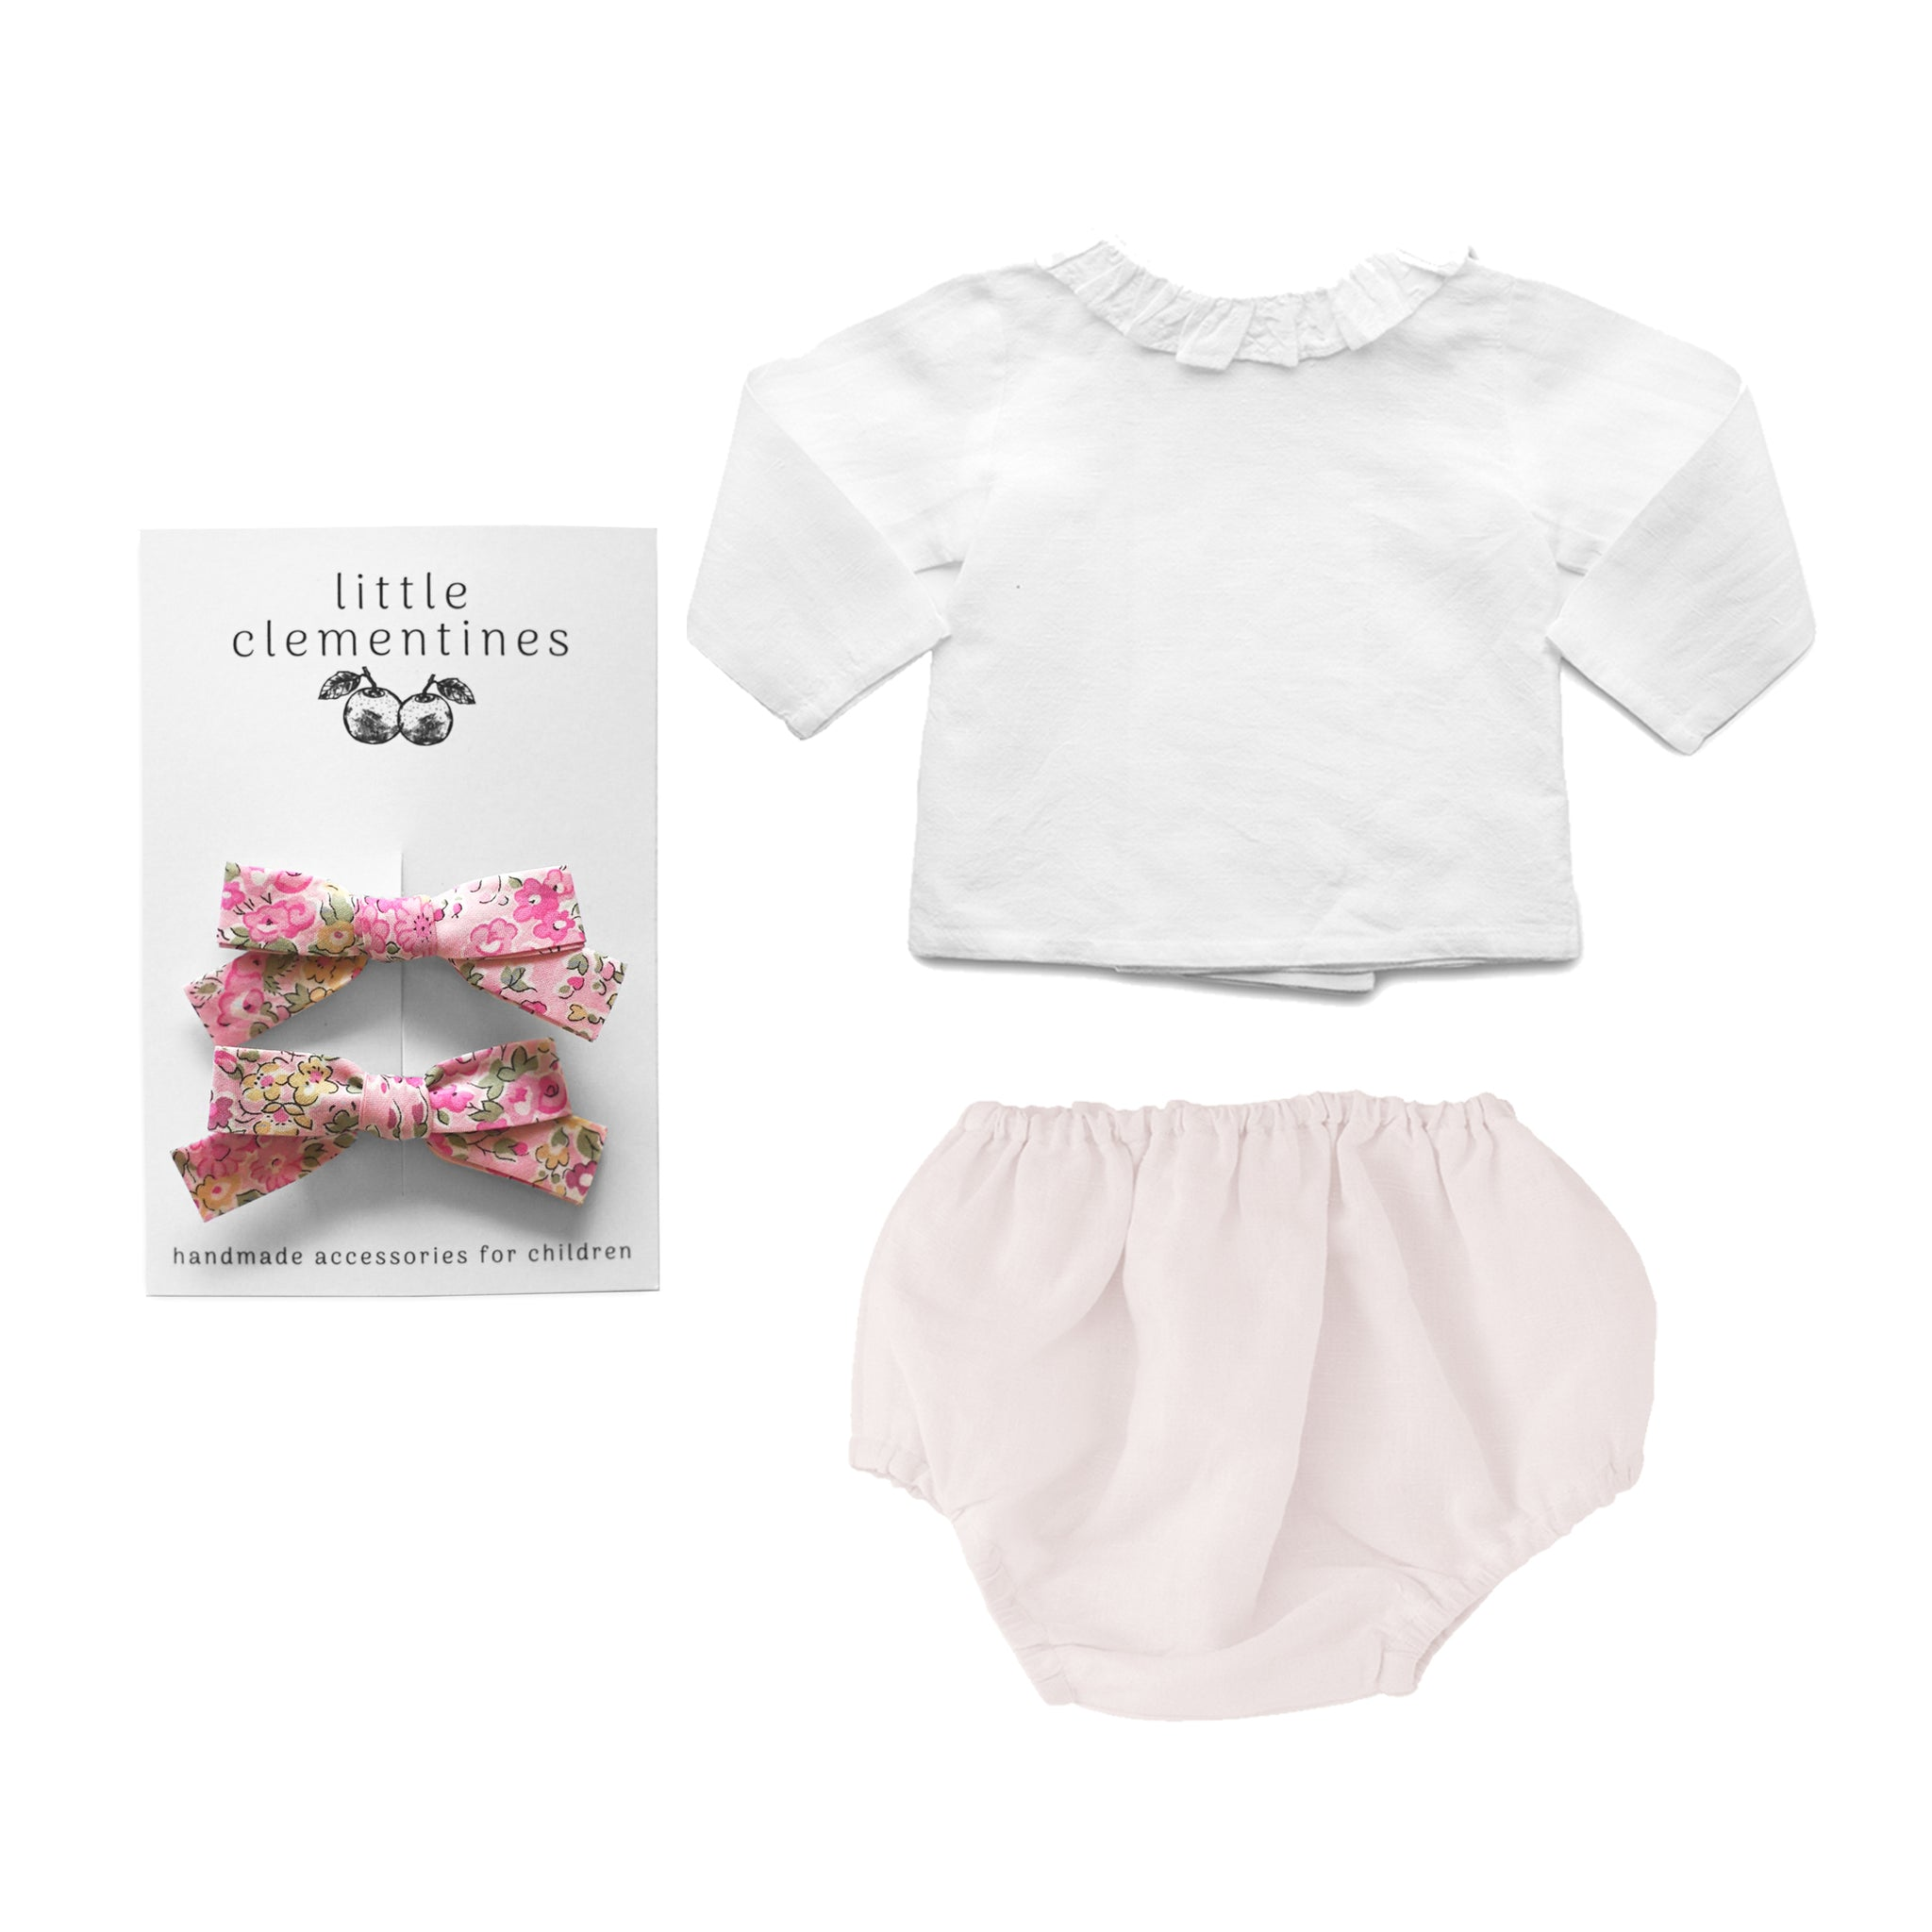 Louelle. x Little Clementines Blossom Pink Liberty Gift Set